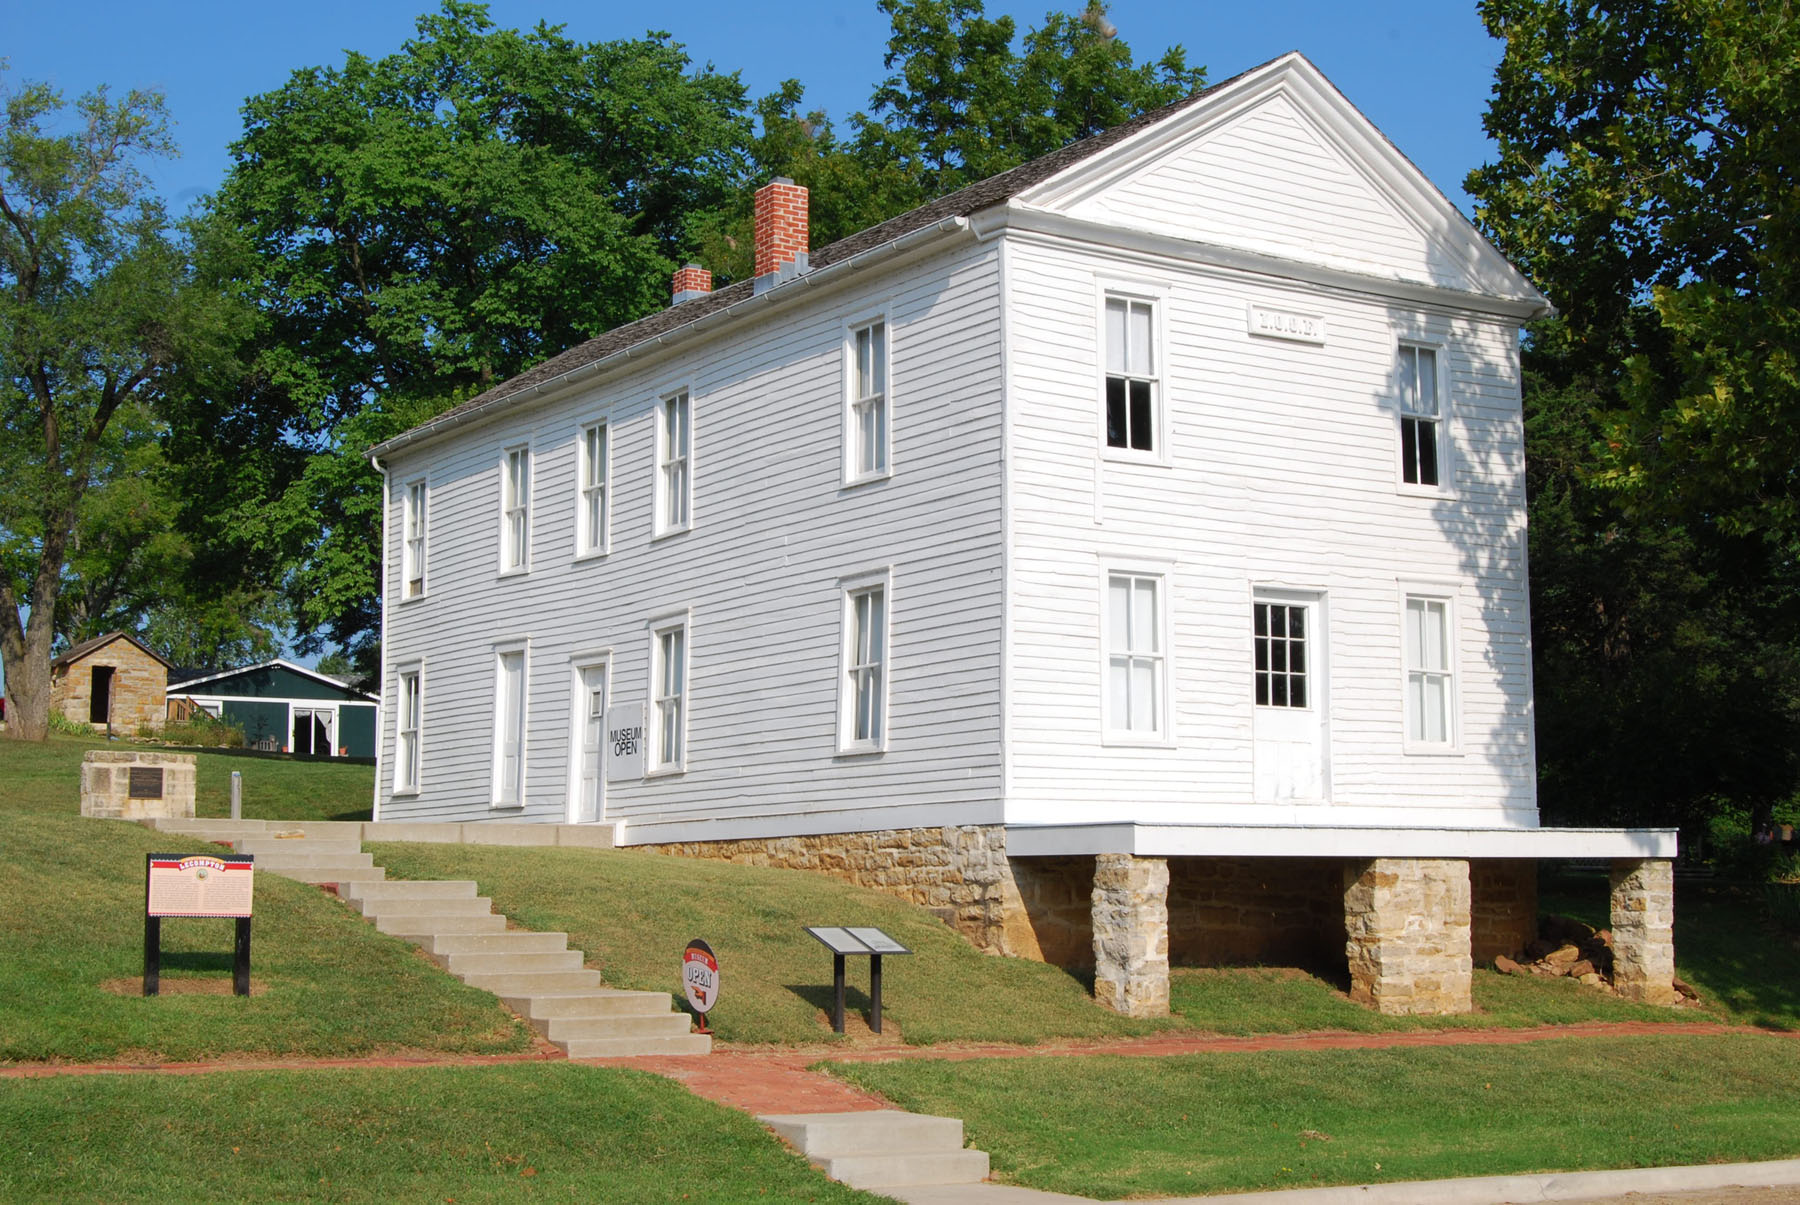 exterior view of Constitution Hall State Historic Site